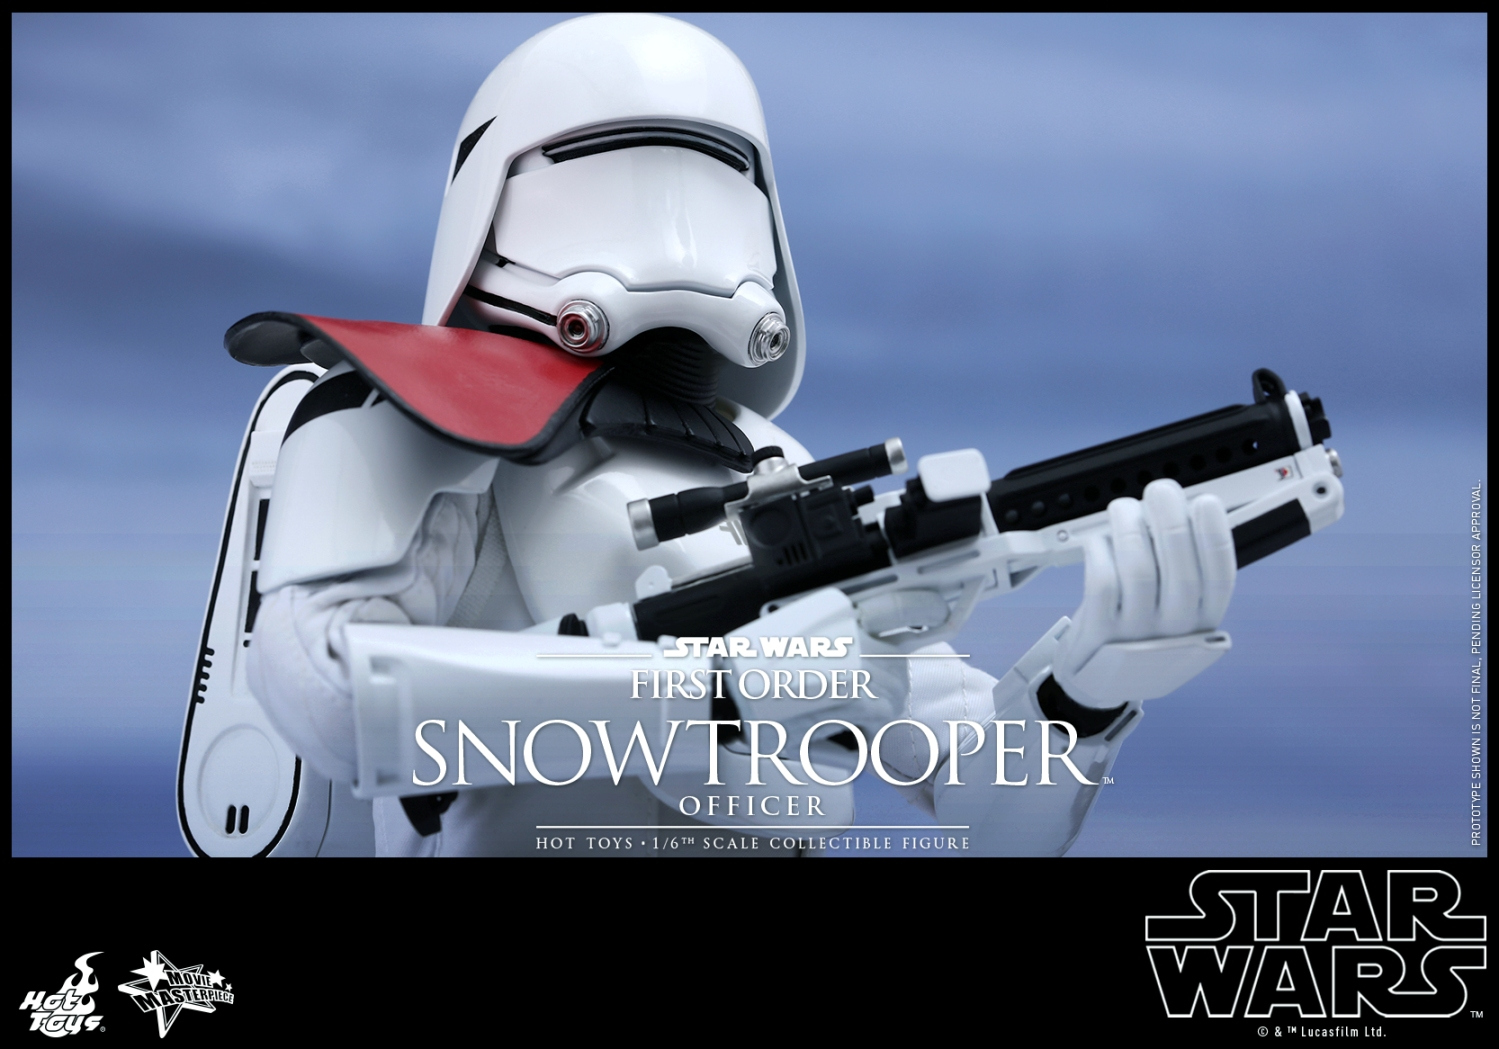 Hot Toys - Star Wars - The Force Awakens - The First Order Snowtrooper Officer Collectible Figure_PR7